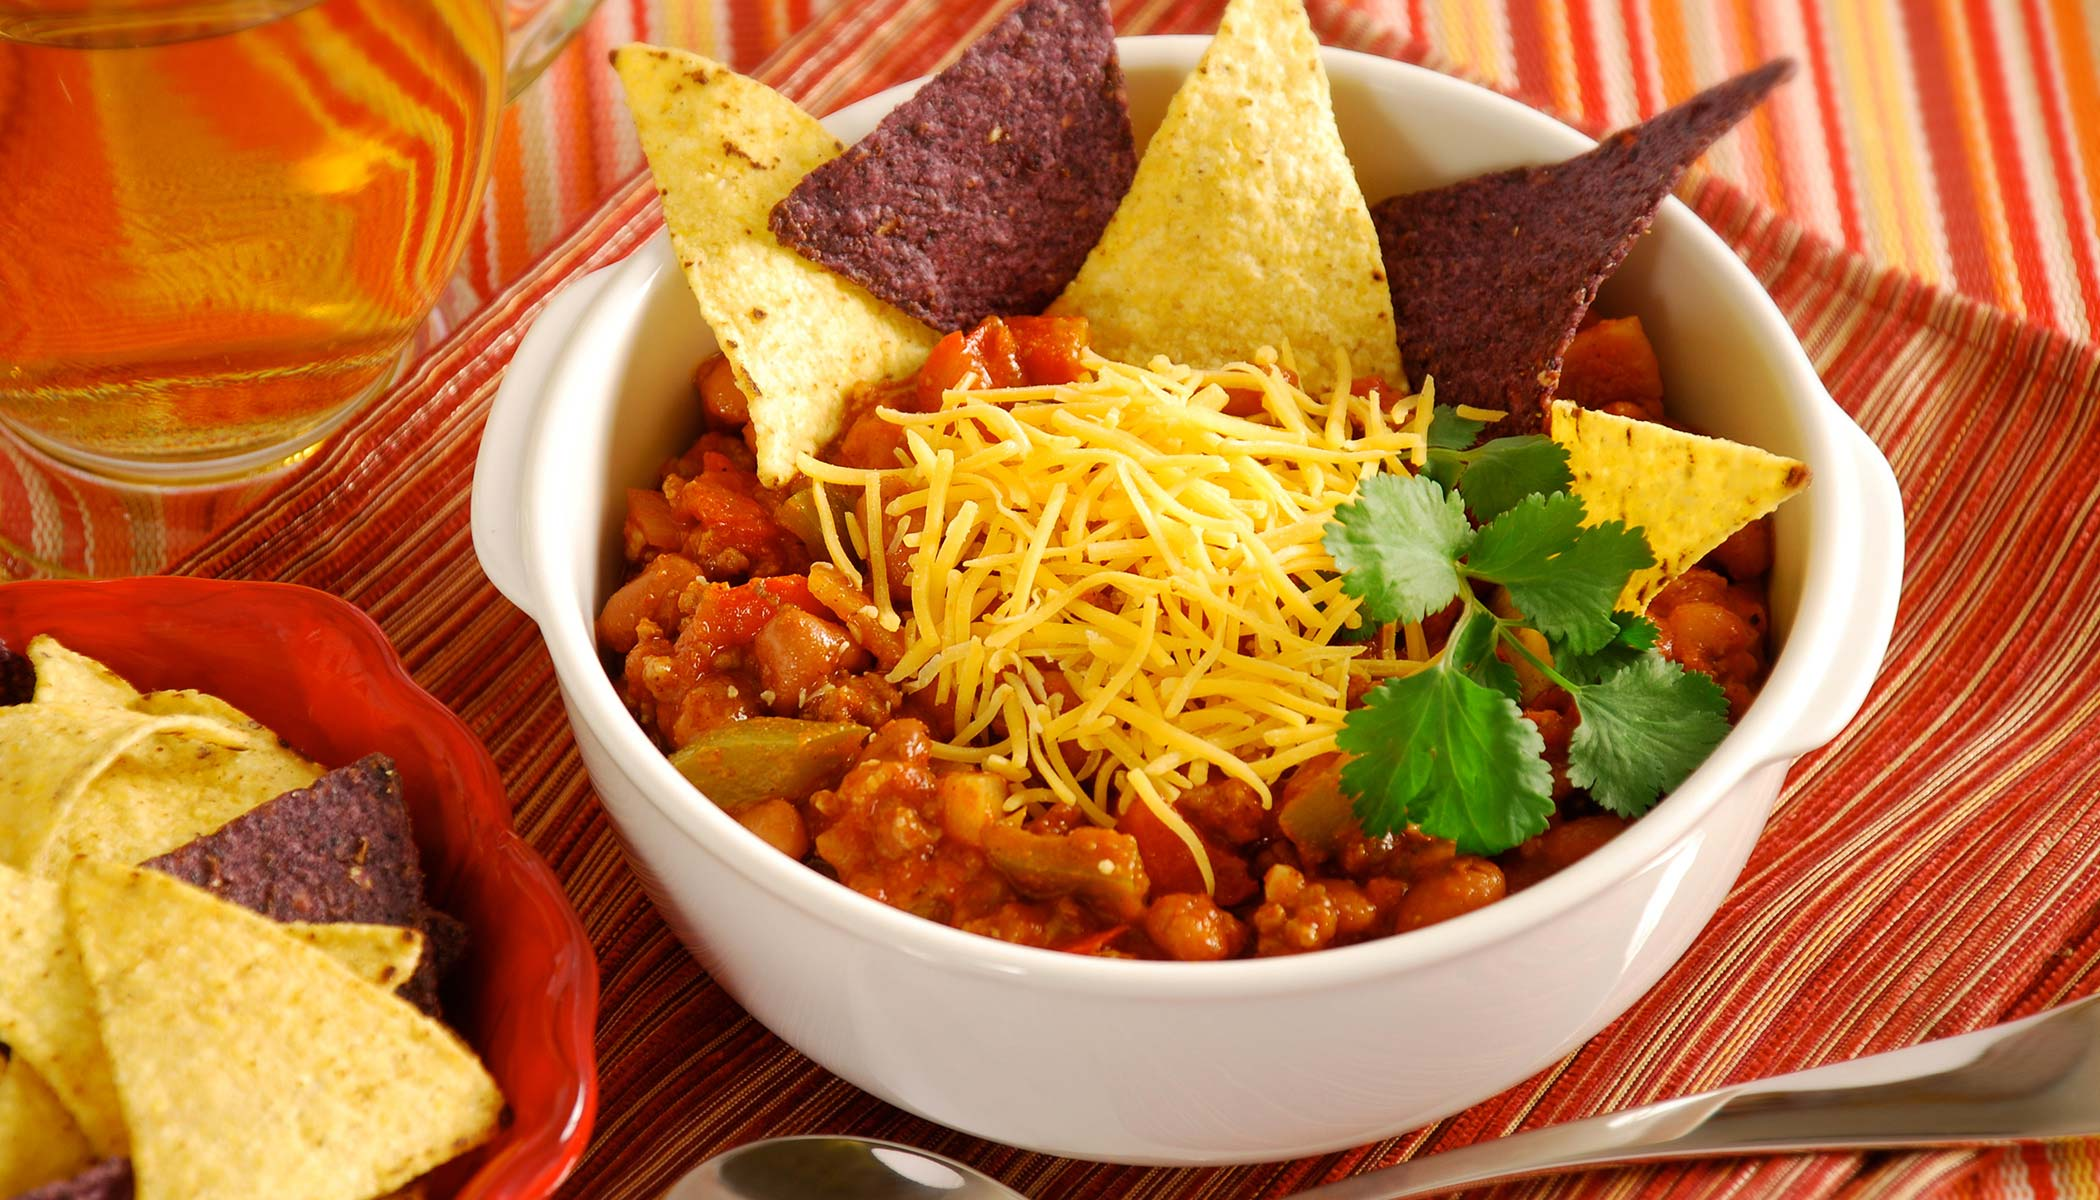 Hearty Slow-Cooked Chili